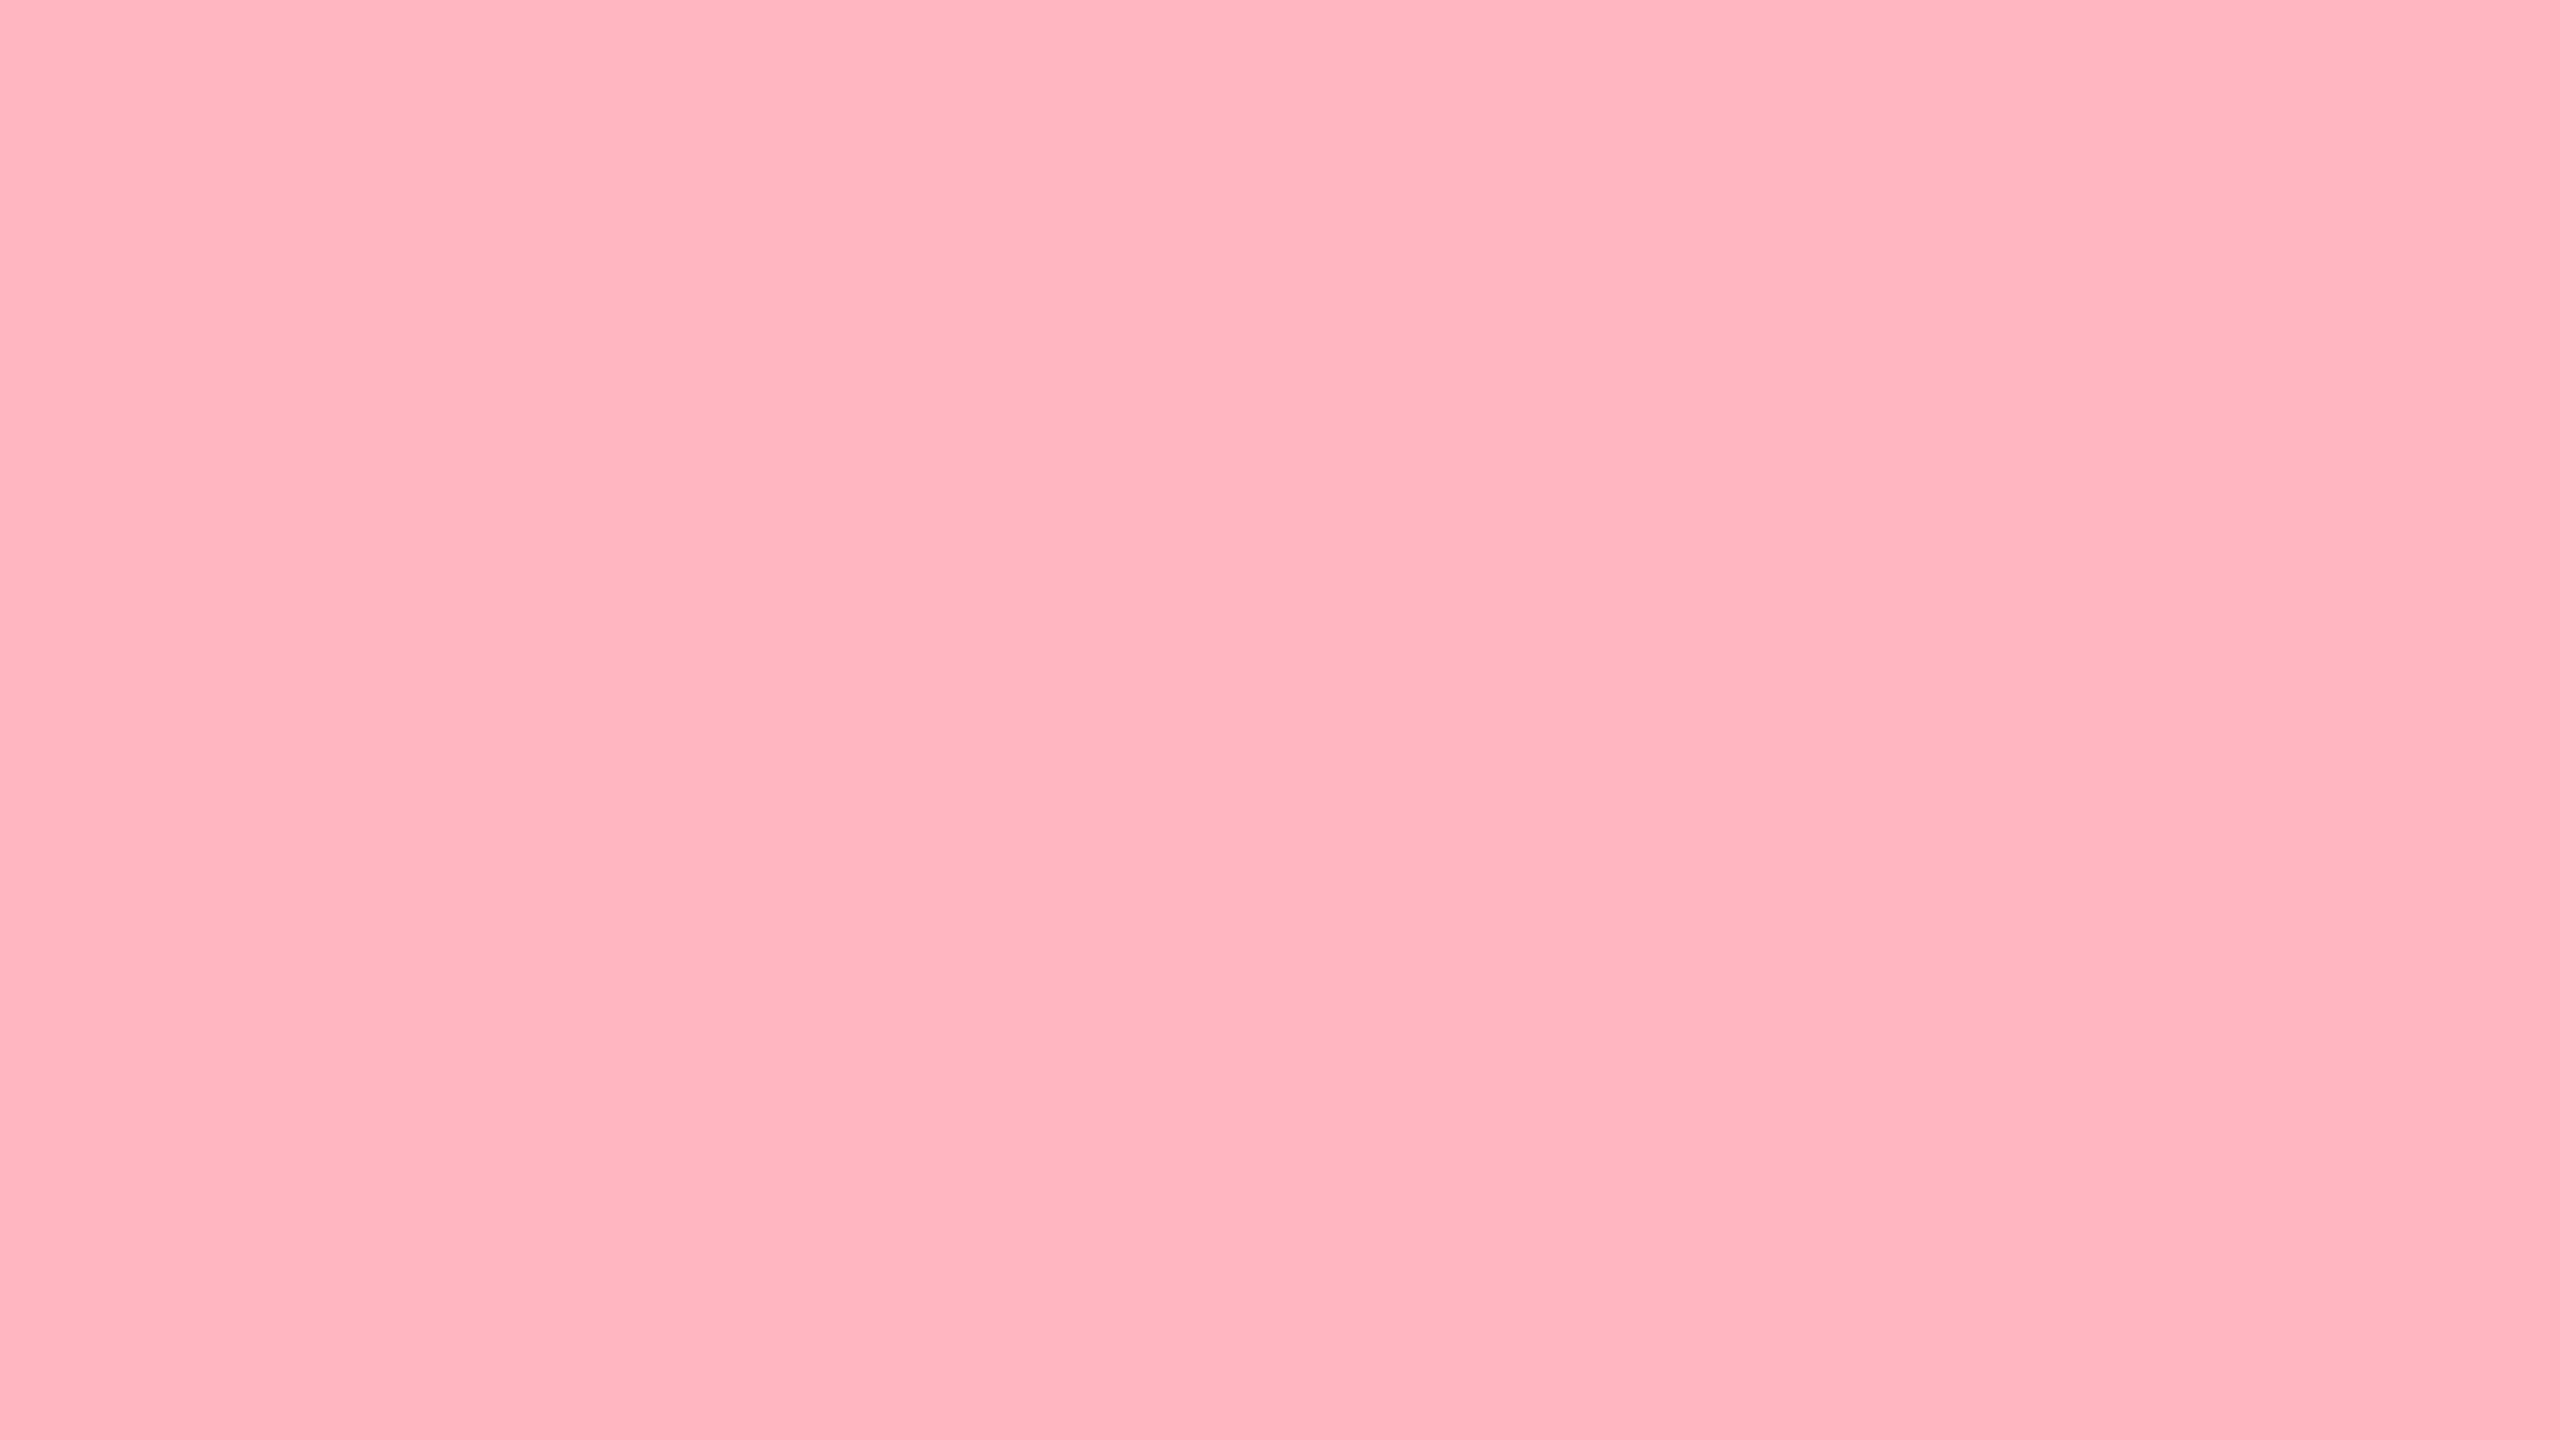 pink color background wallpapersafari On the color light pink